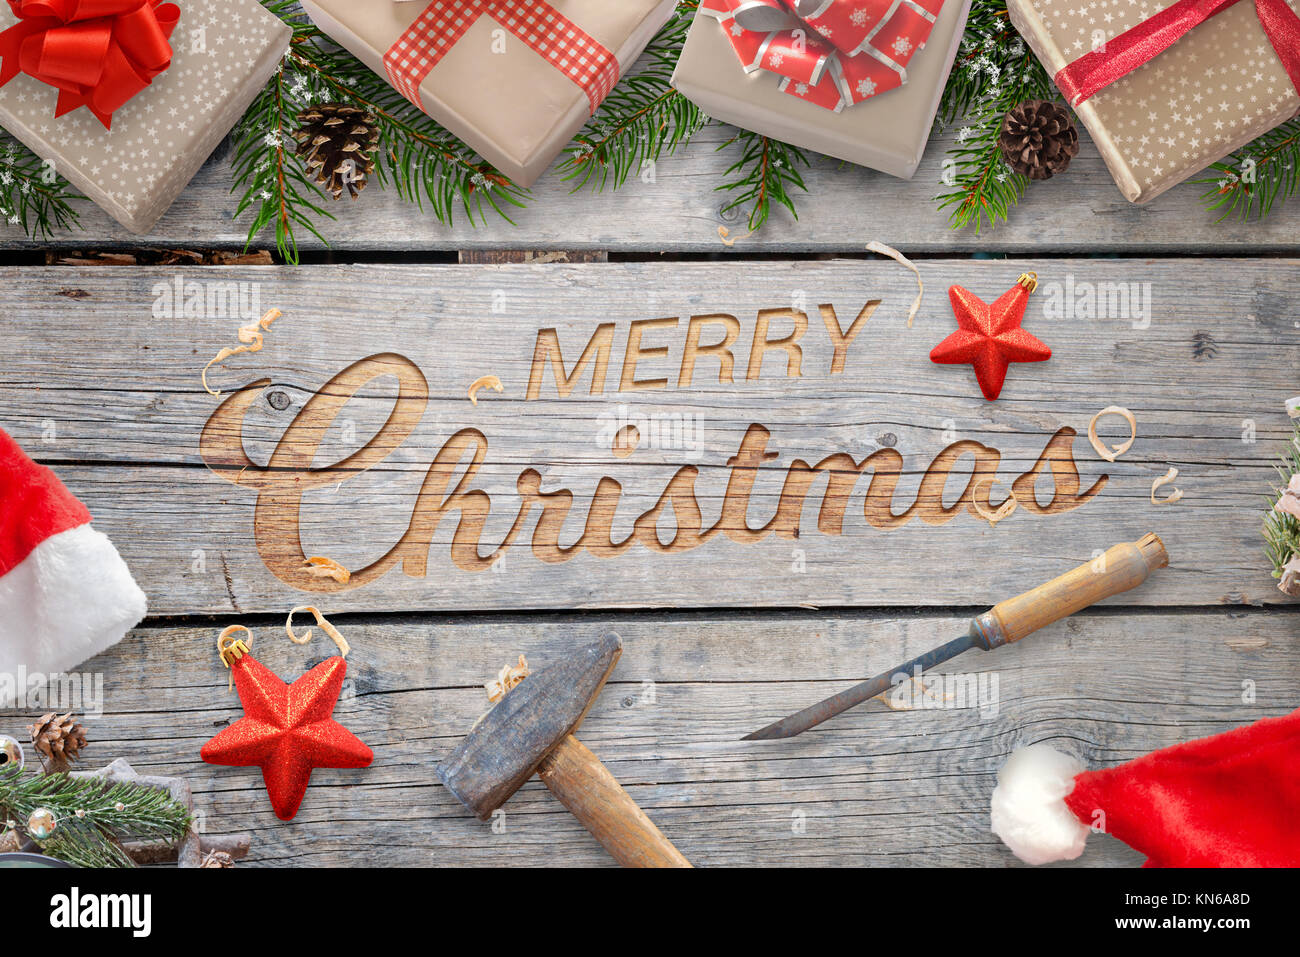 Christmas hand craft on wooden surface with hammer and chisel. Wooden carving greeting text surrounded with gifts - Stock Image